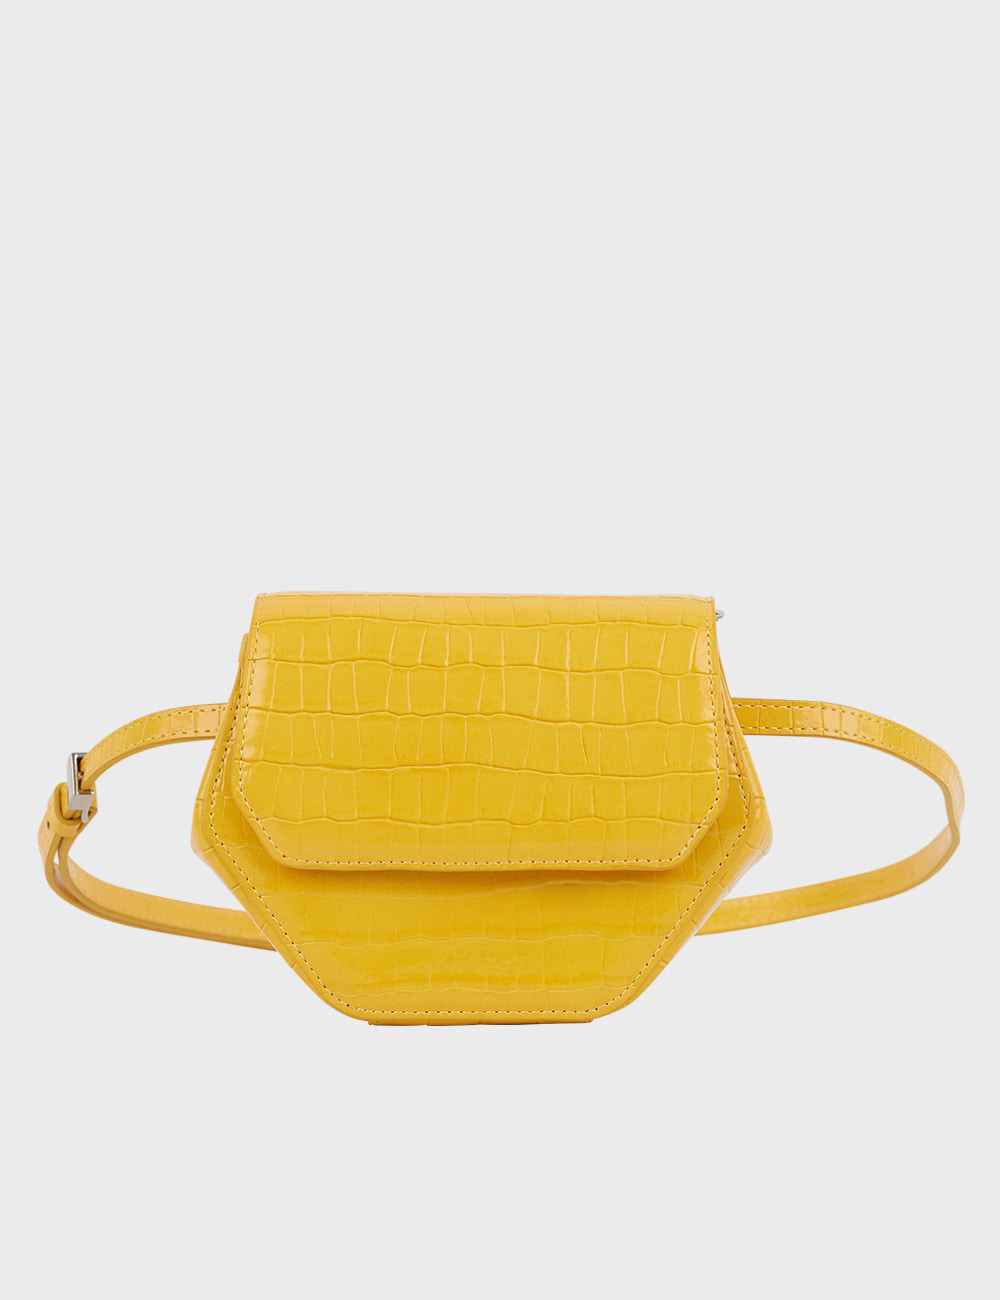 MAISON246,246 MAGOT CROCODILE PENNY BAG - YELLOW,No.246